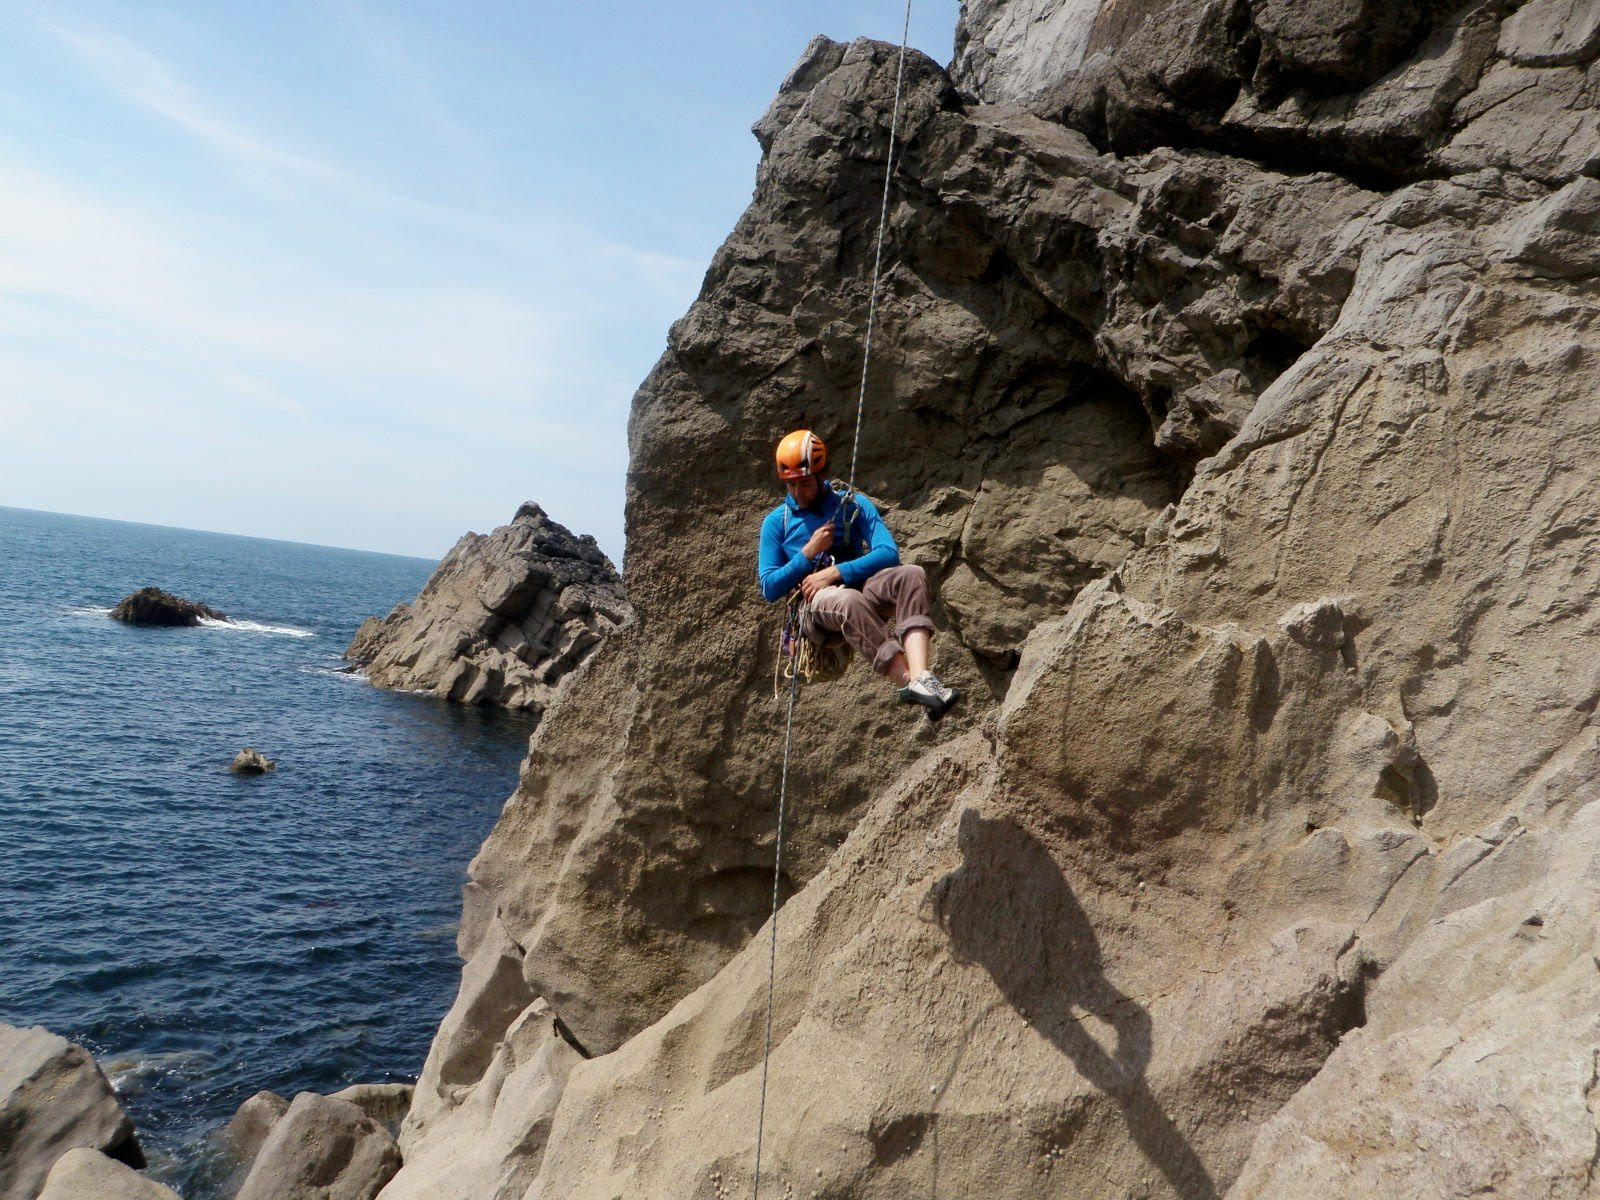 Abseiling into a sea cliff